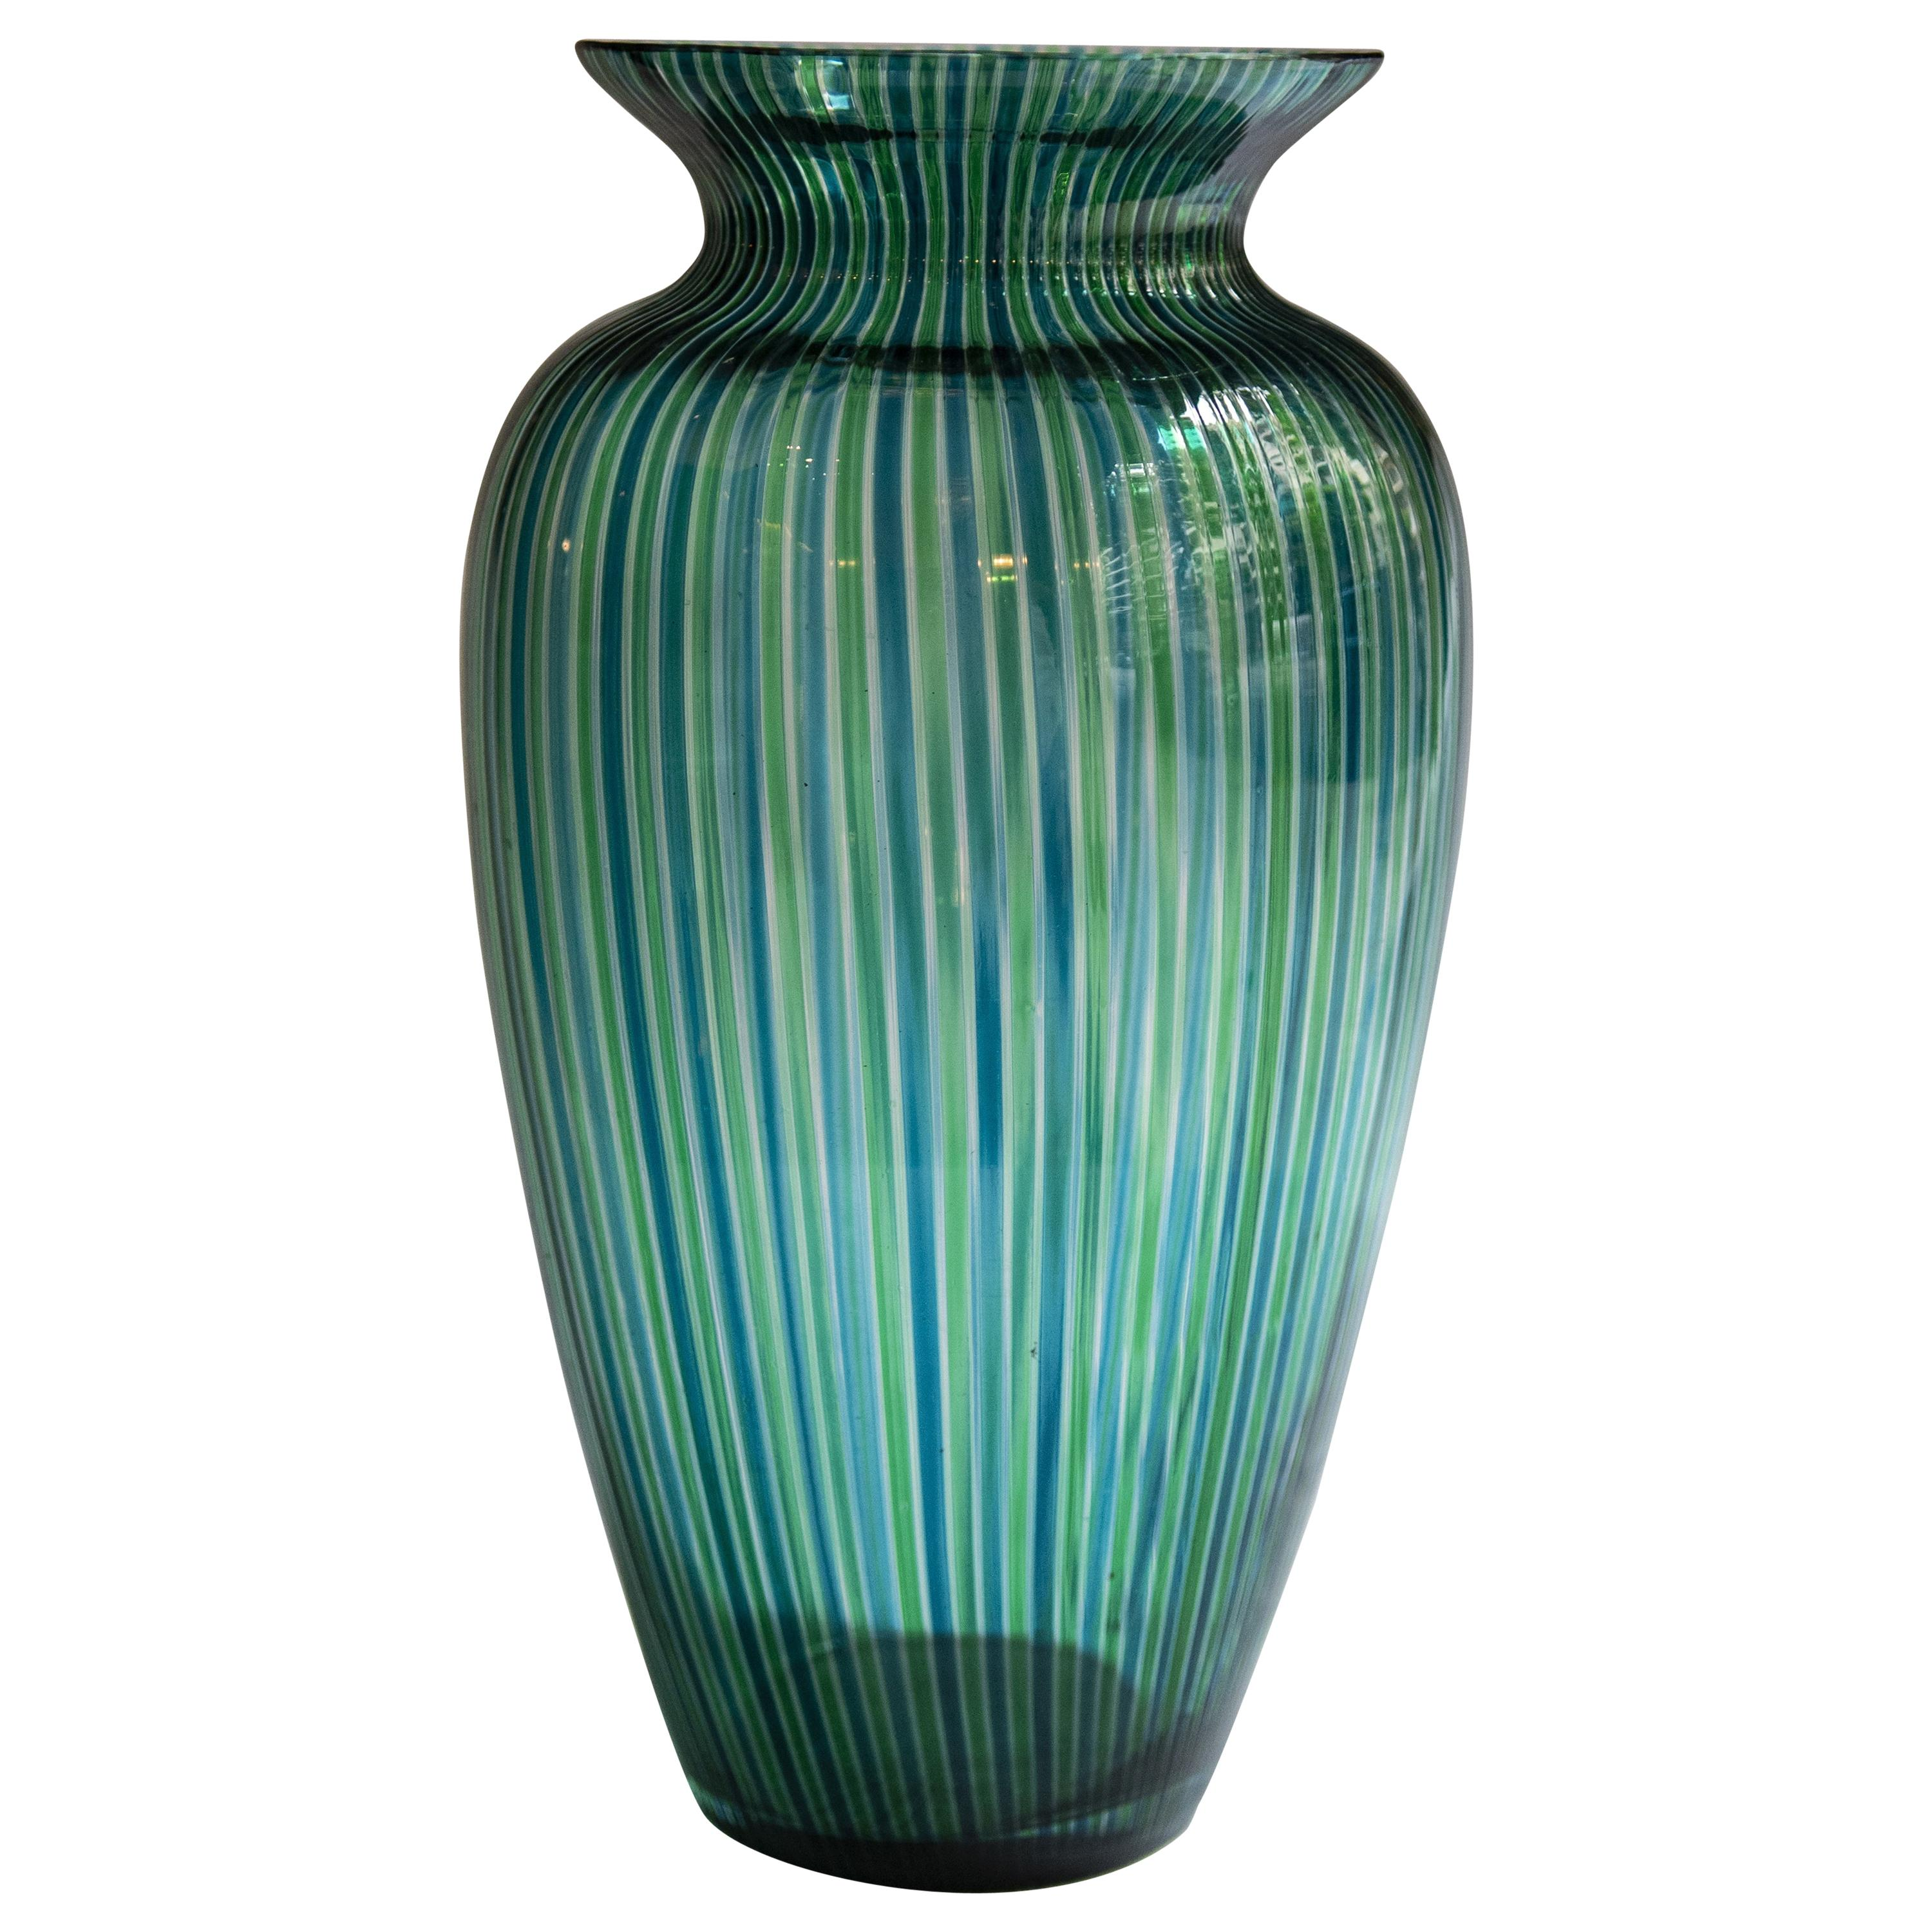 Murano Blown Glass Vase Atributted to Gio Ponti, 1960s